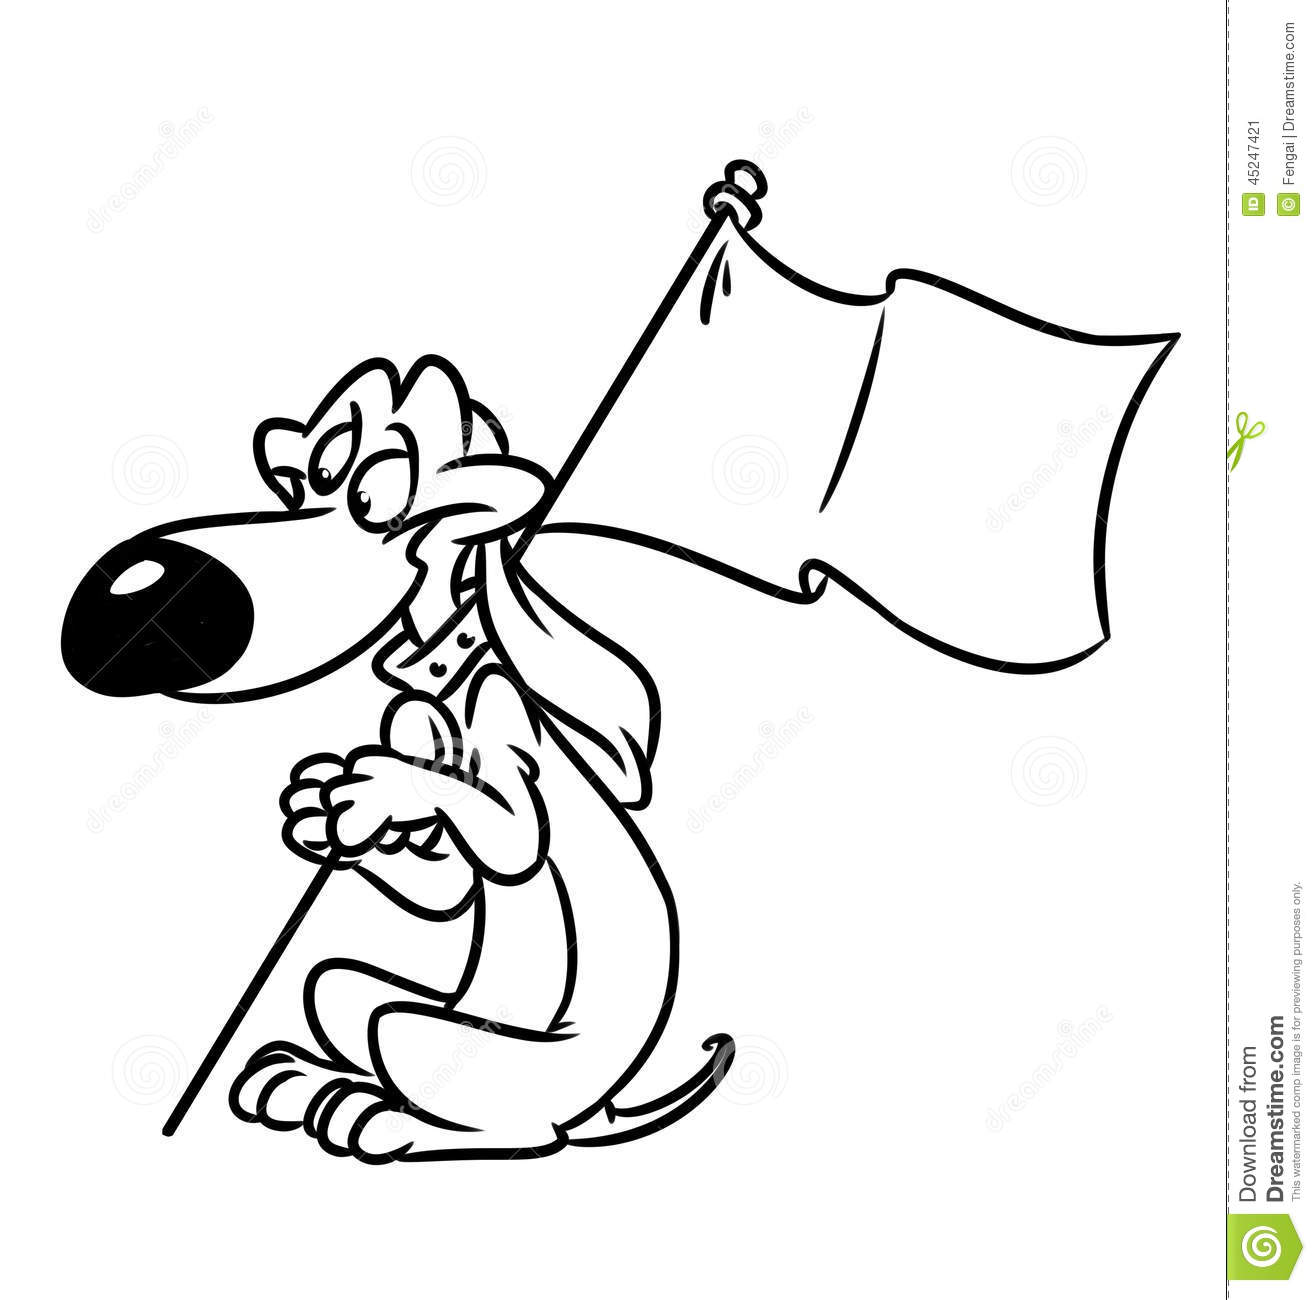 Dog Dachshund Flag Cartoon Illustration Stock Illustration